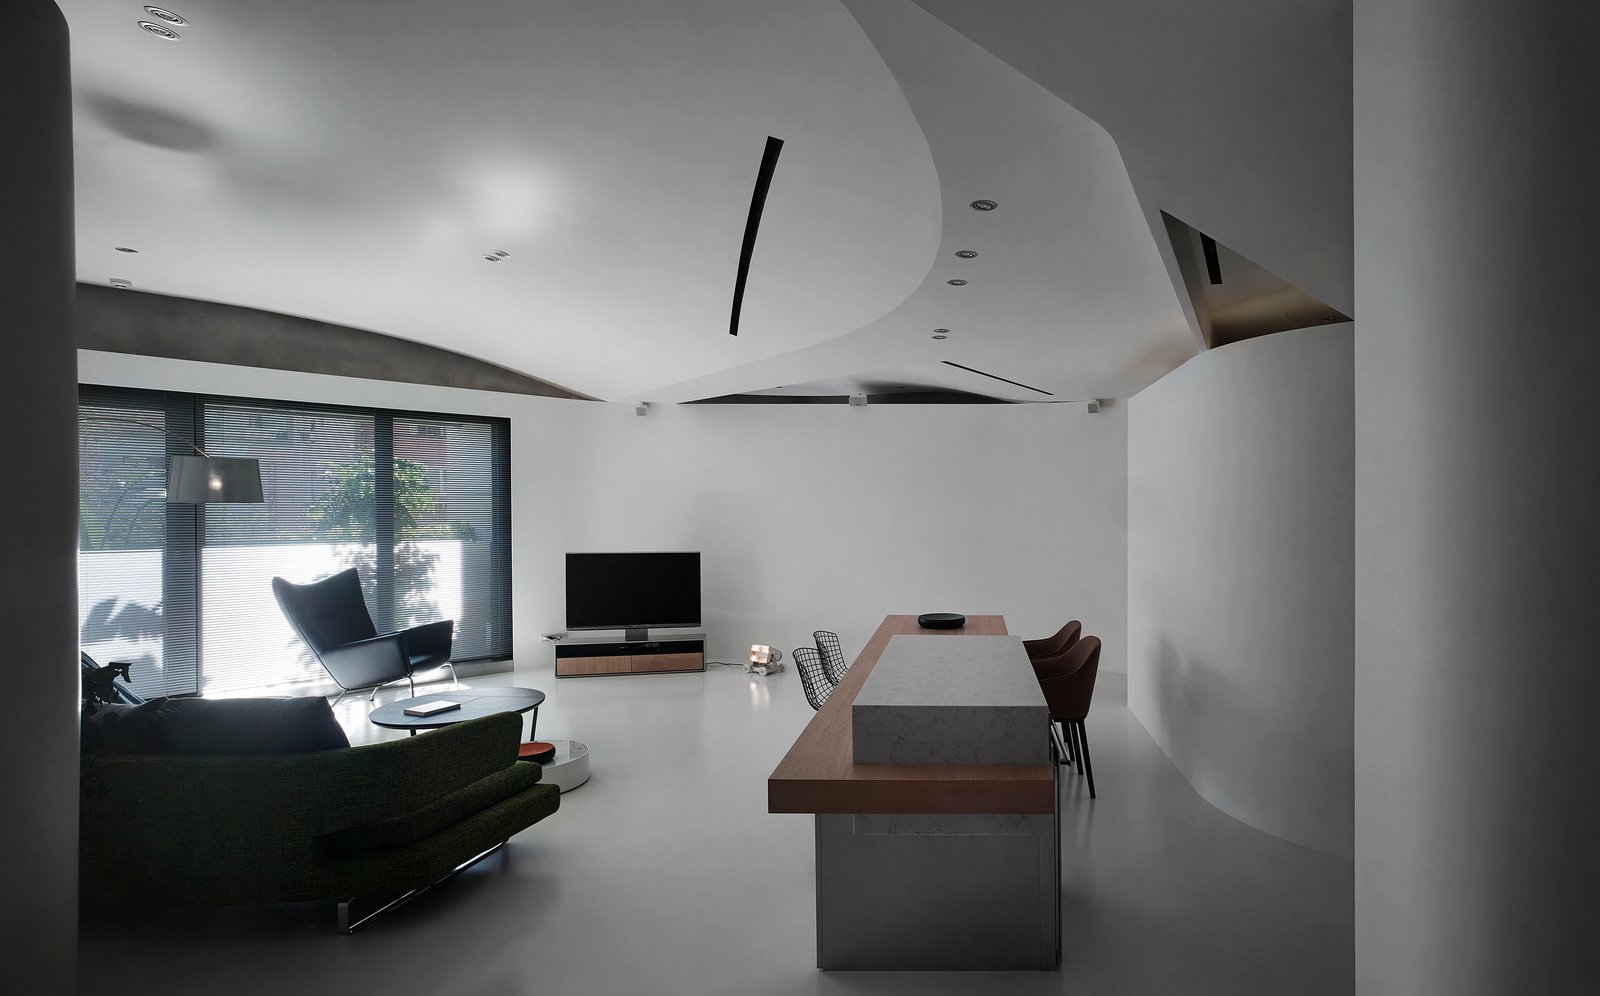 Living Room, Chair, Sofa, Bar, Table, Lamps, Ceiling Lighting, Wall Lighting, and Concrete Floor The ceiling is a composite of several curved surfaces, the seams of which implicitly implying the activities underneath.   Fluid House